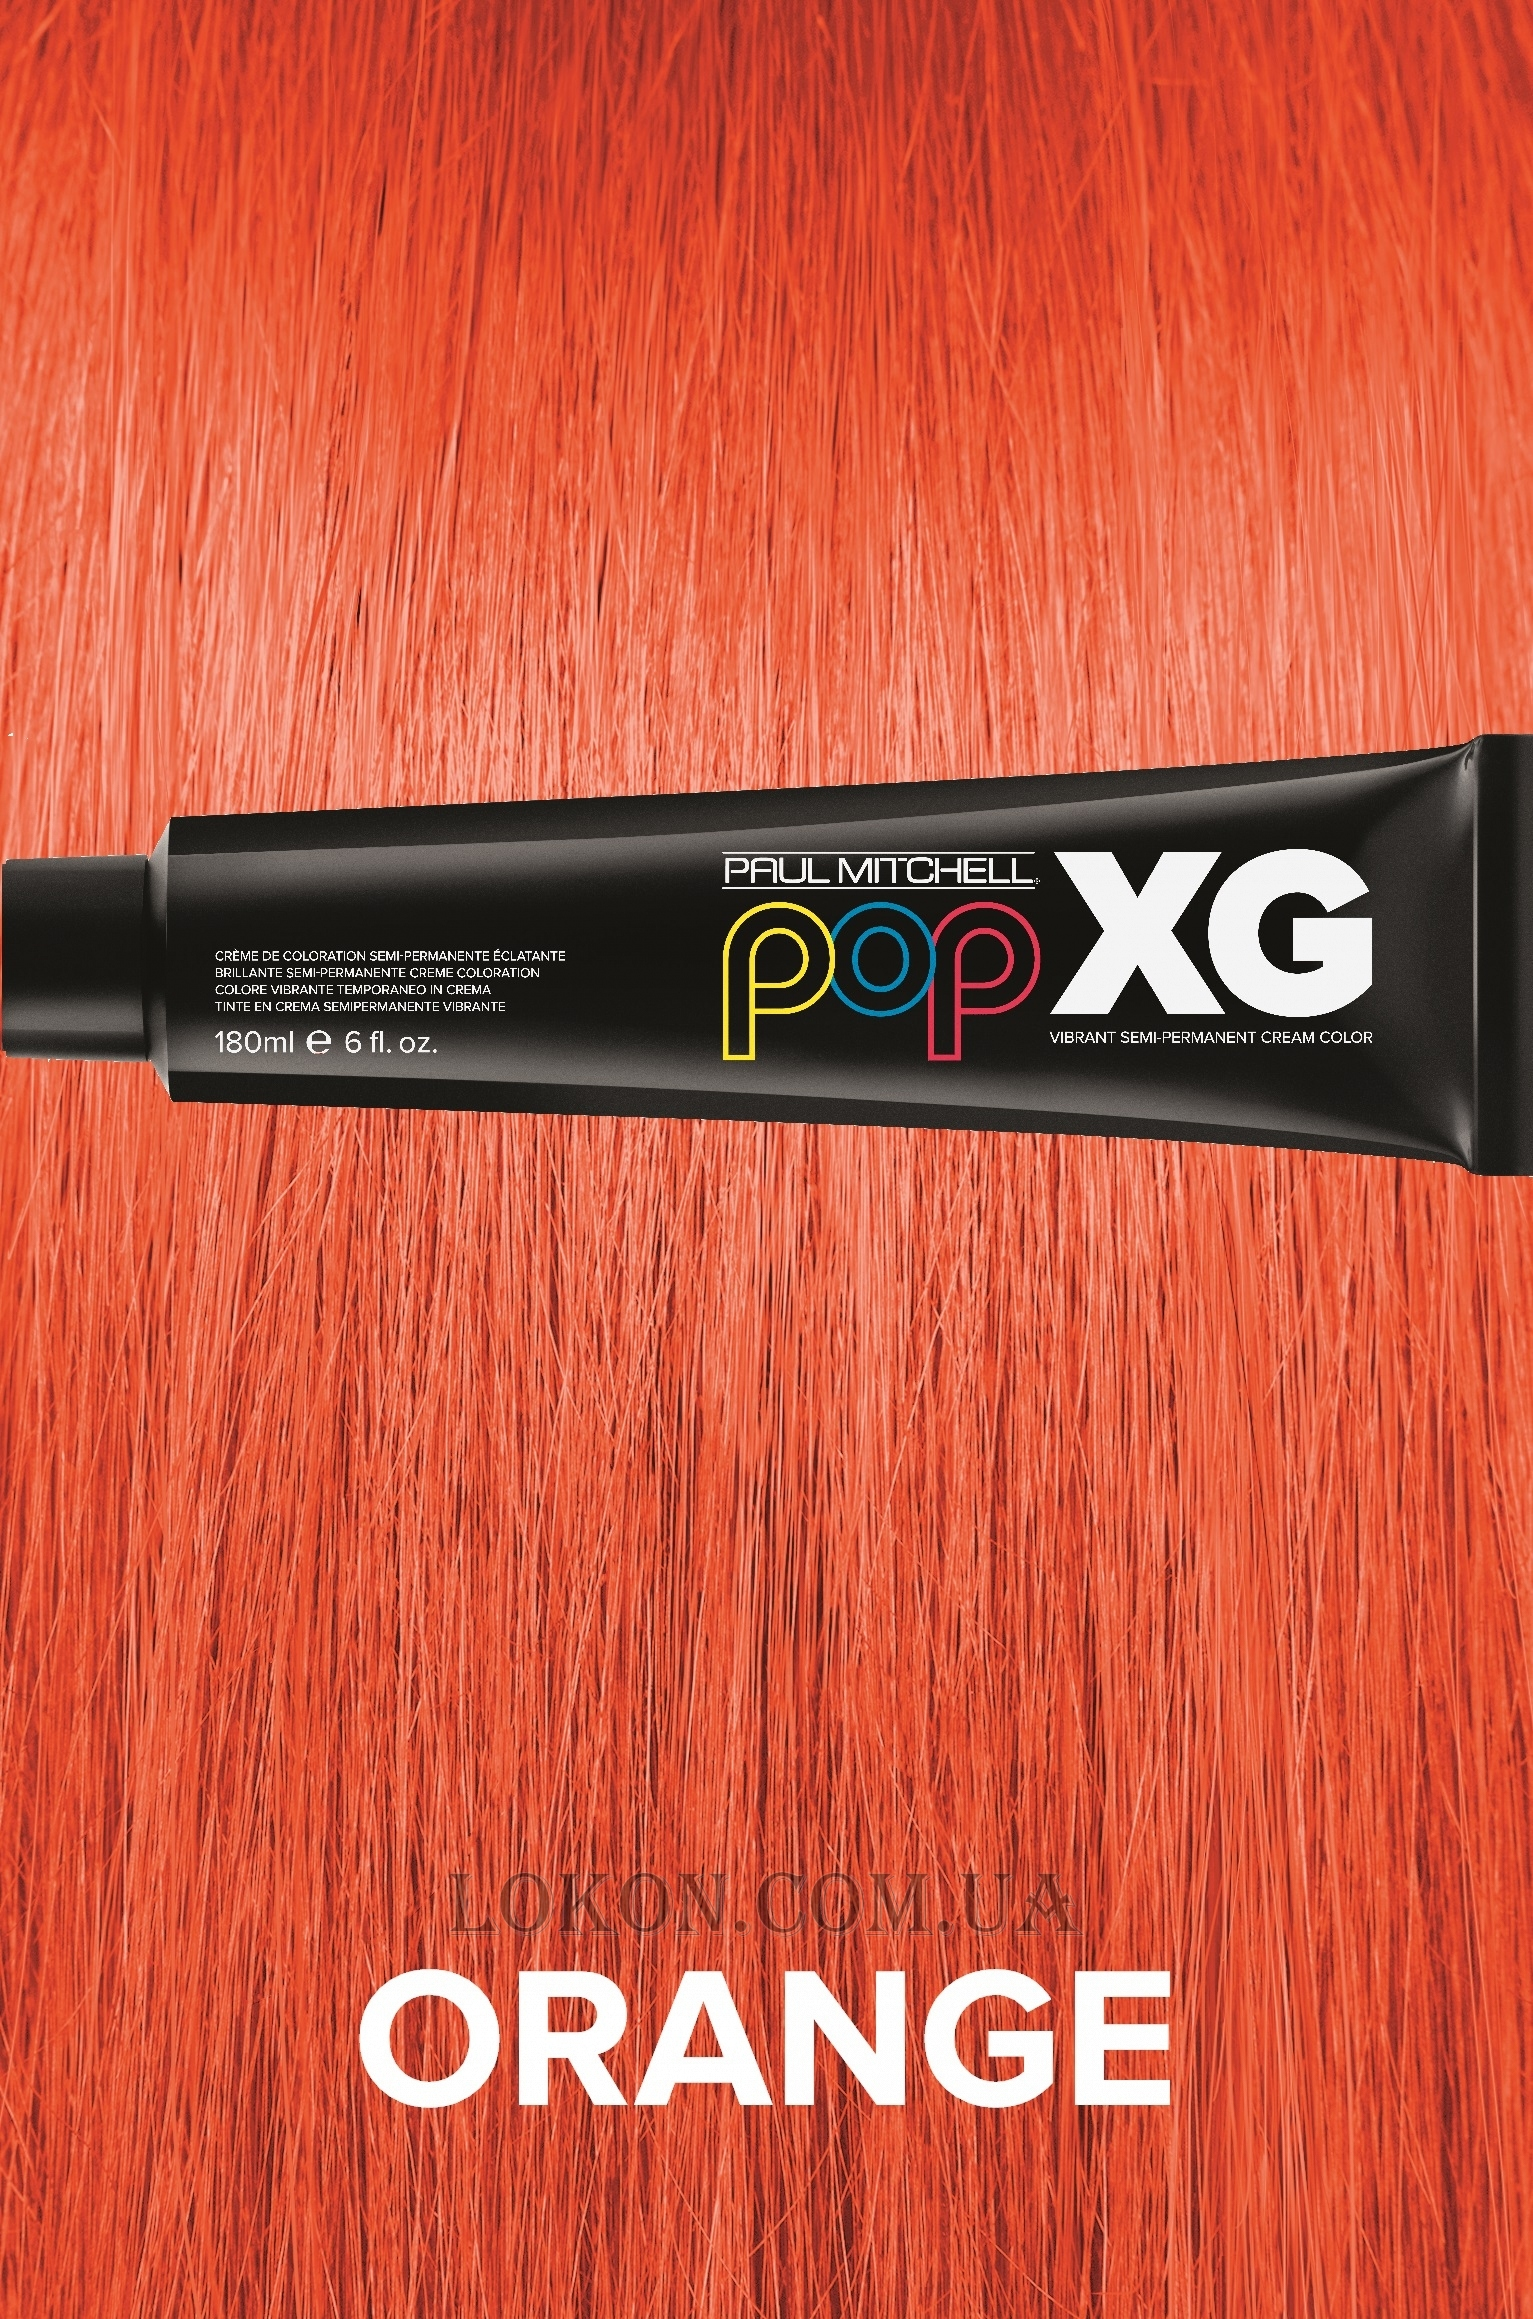 Paul Mitchell  Professional Haircare  Salon Hair Products